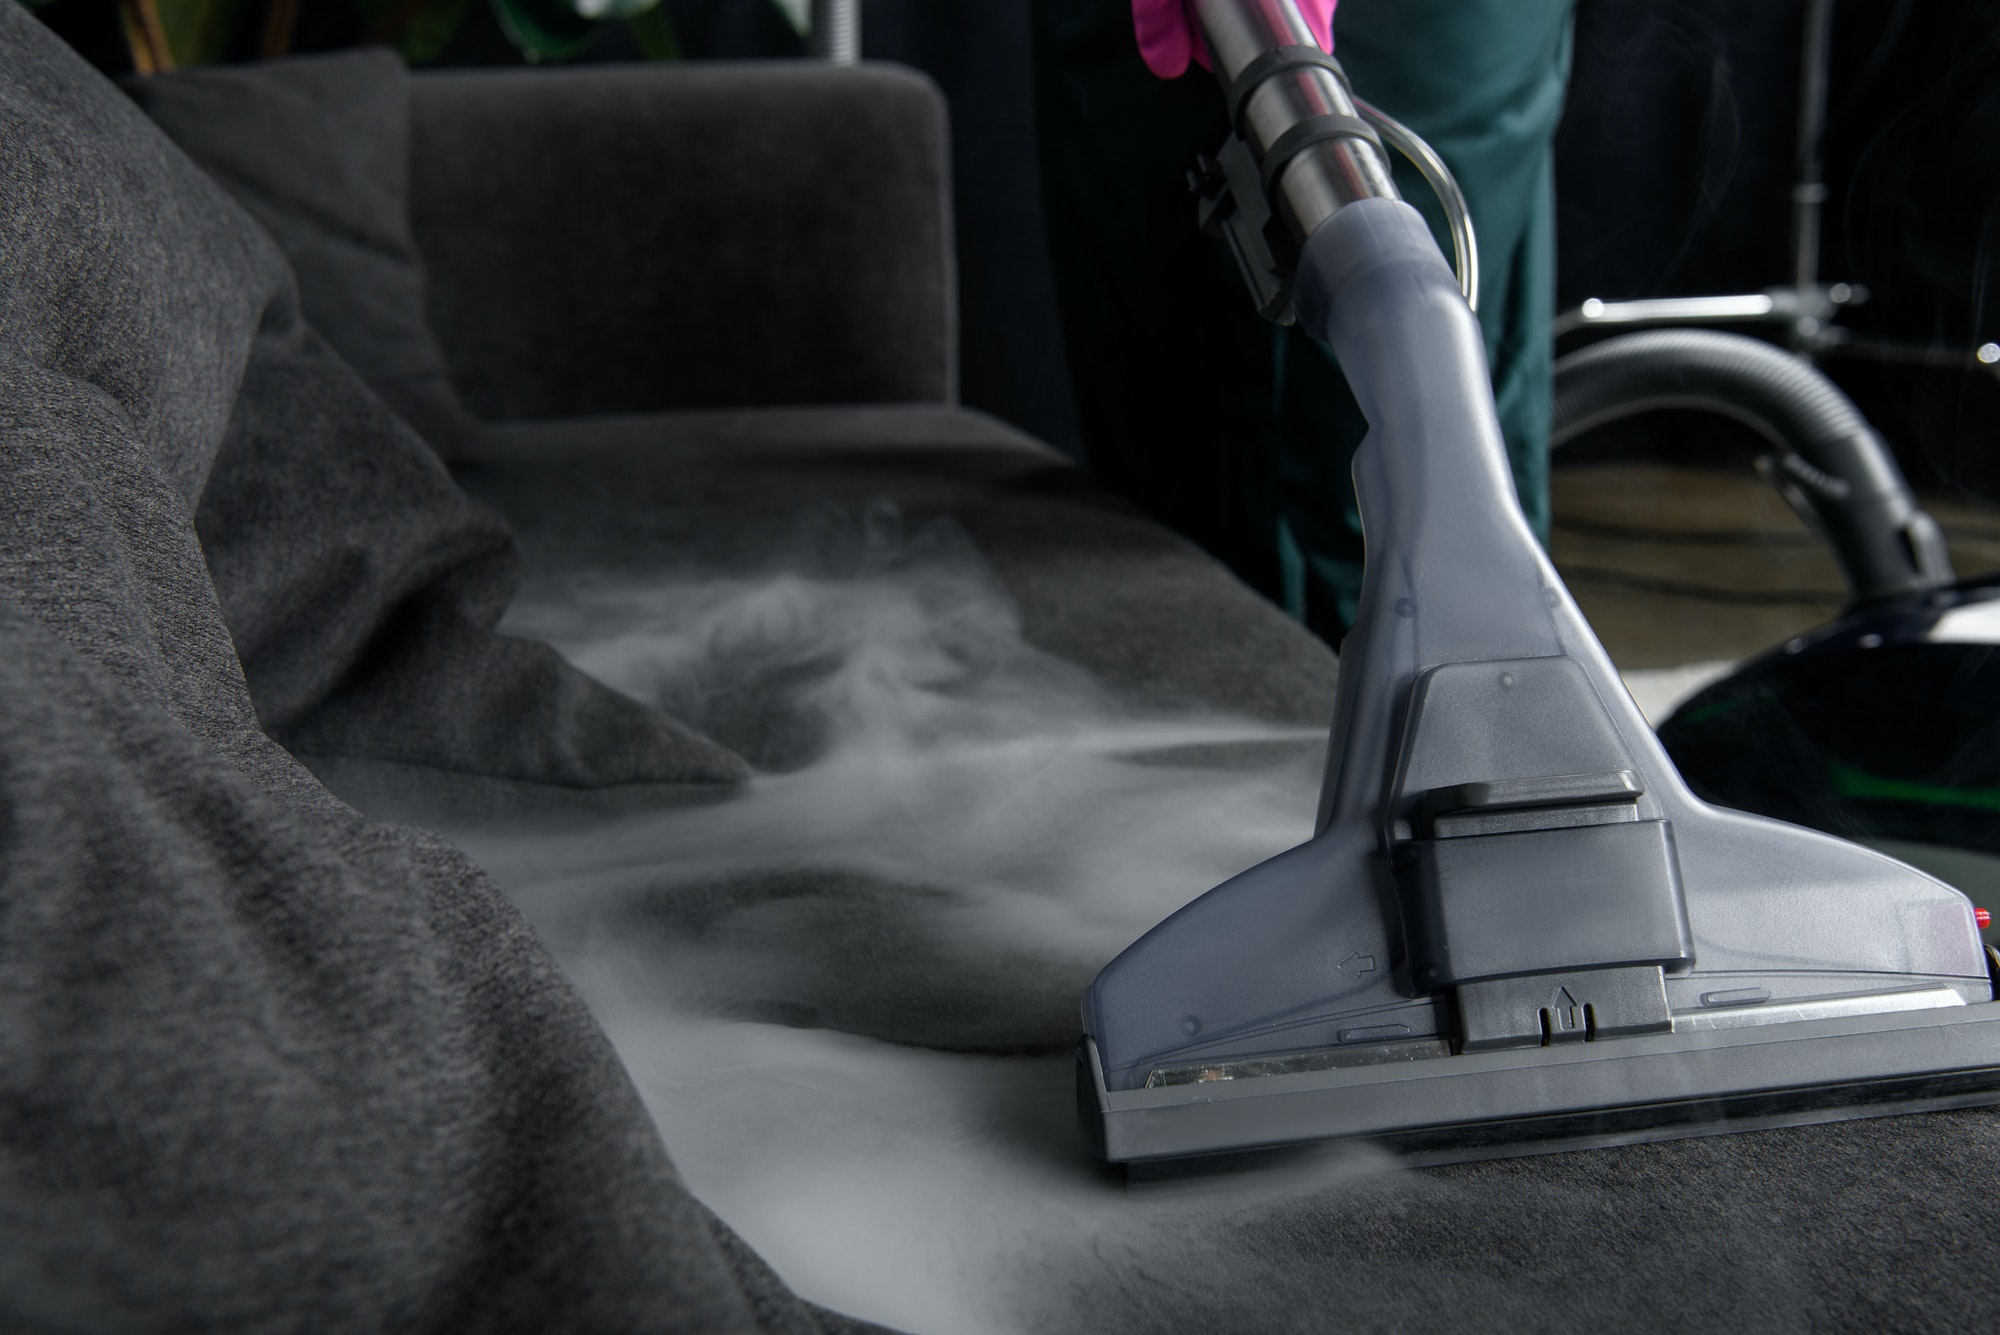 Industrial Steam Cleaners, Pressure Washers and Vacuum Cleaners ensure that no job is too tough for The Scrub Squad.